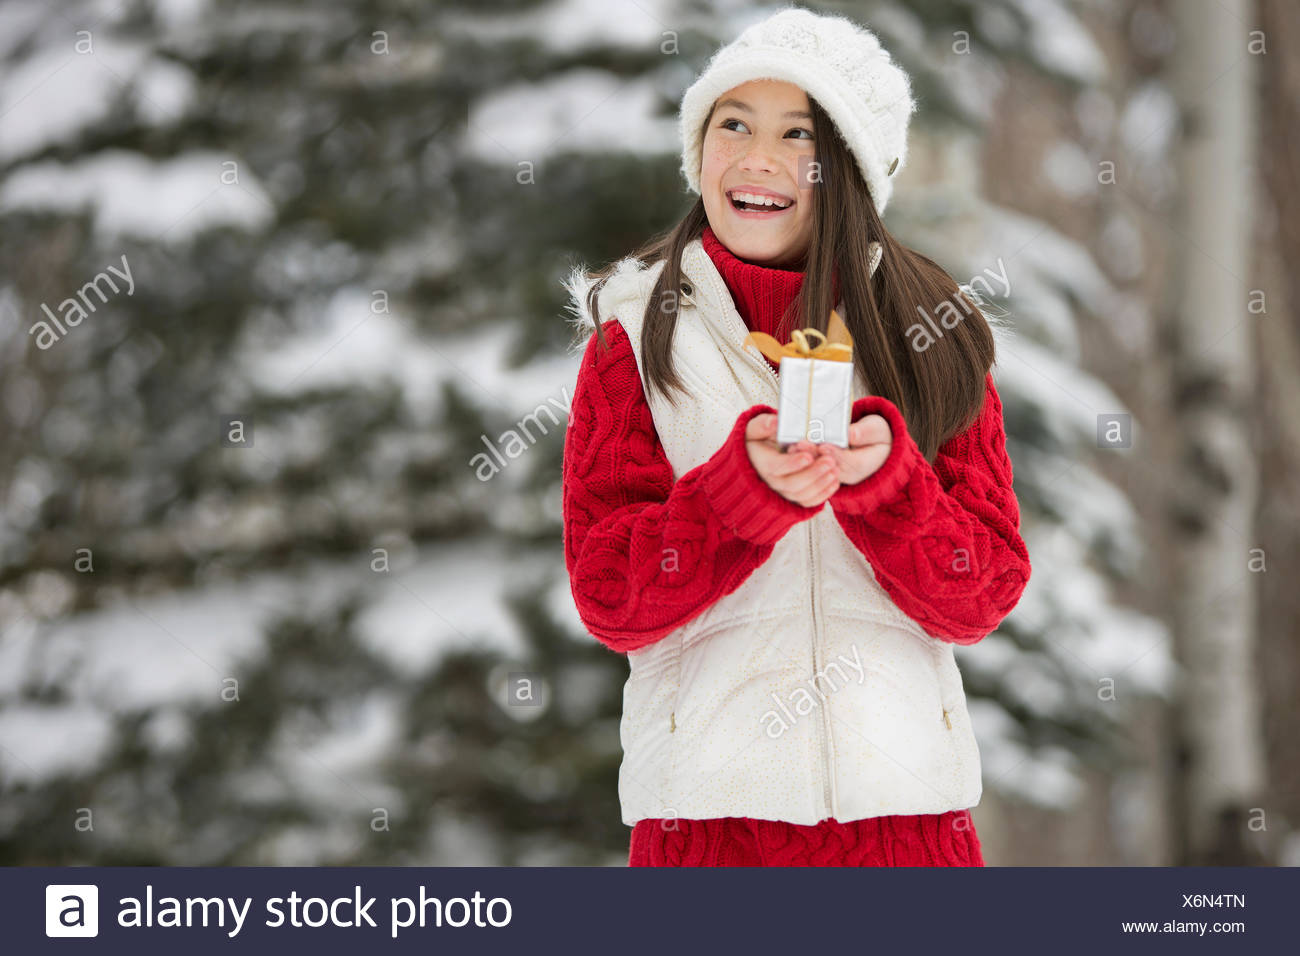 Smiling girl holding small Christmas gift in snow - Stock Image